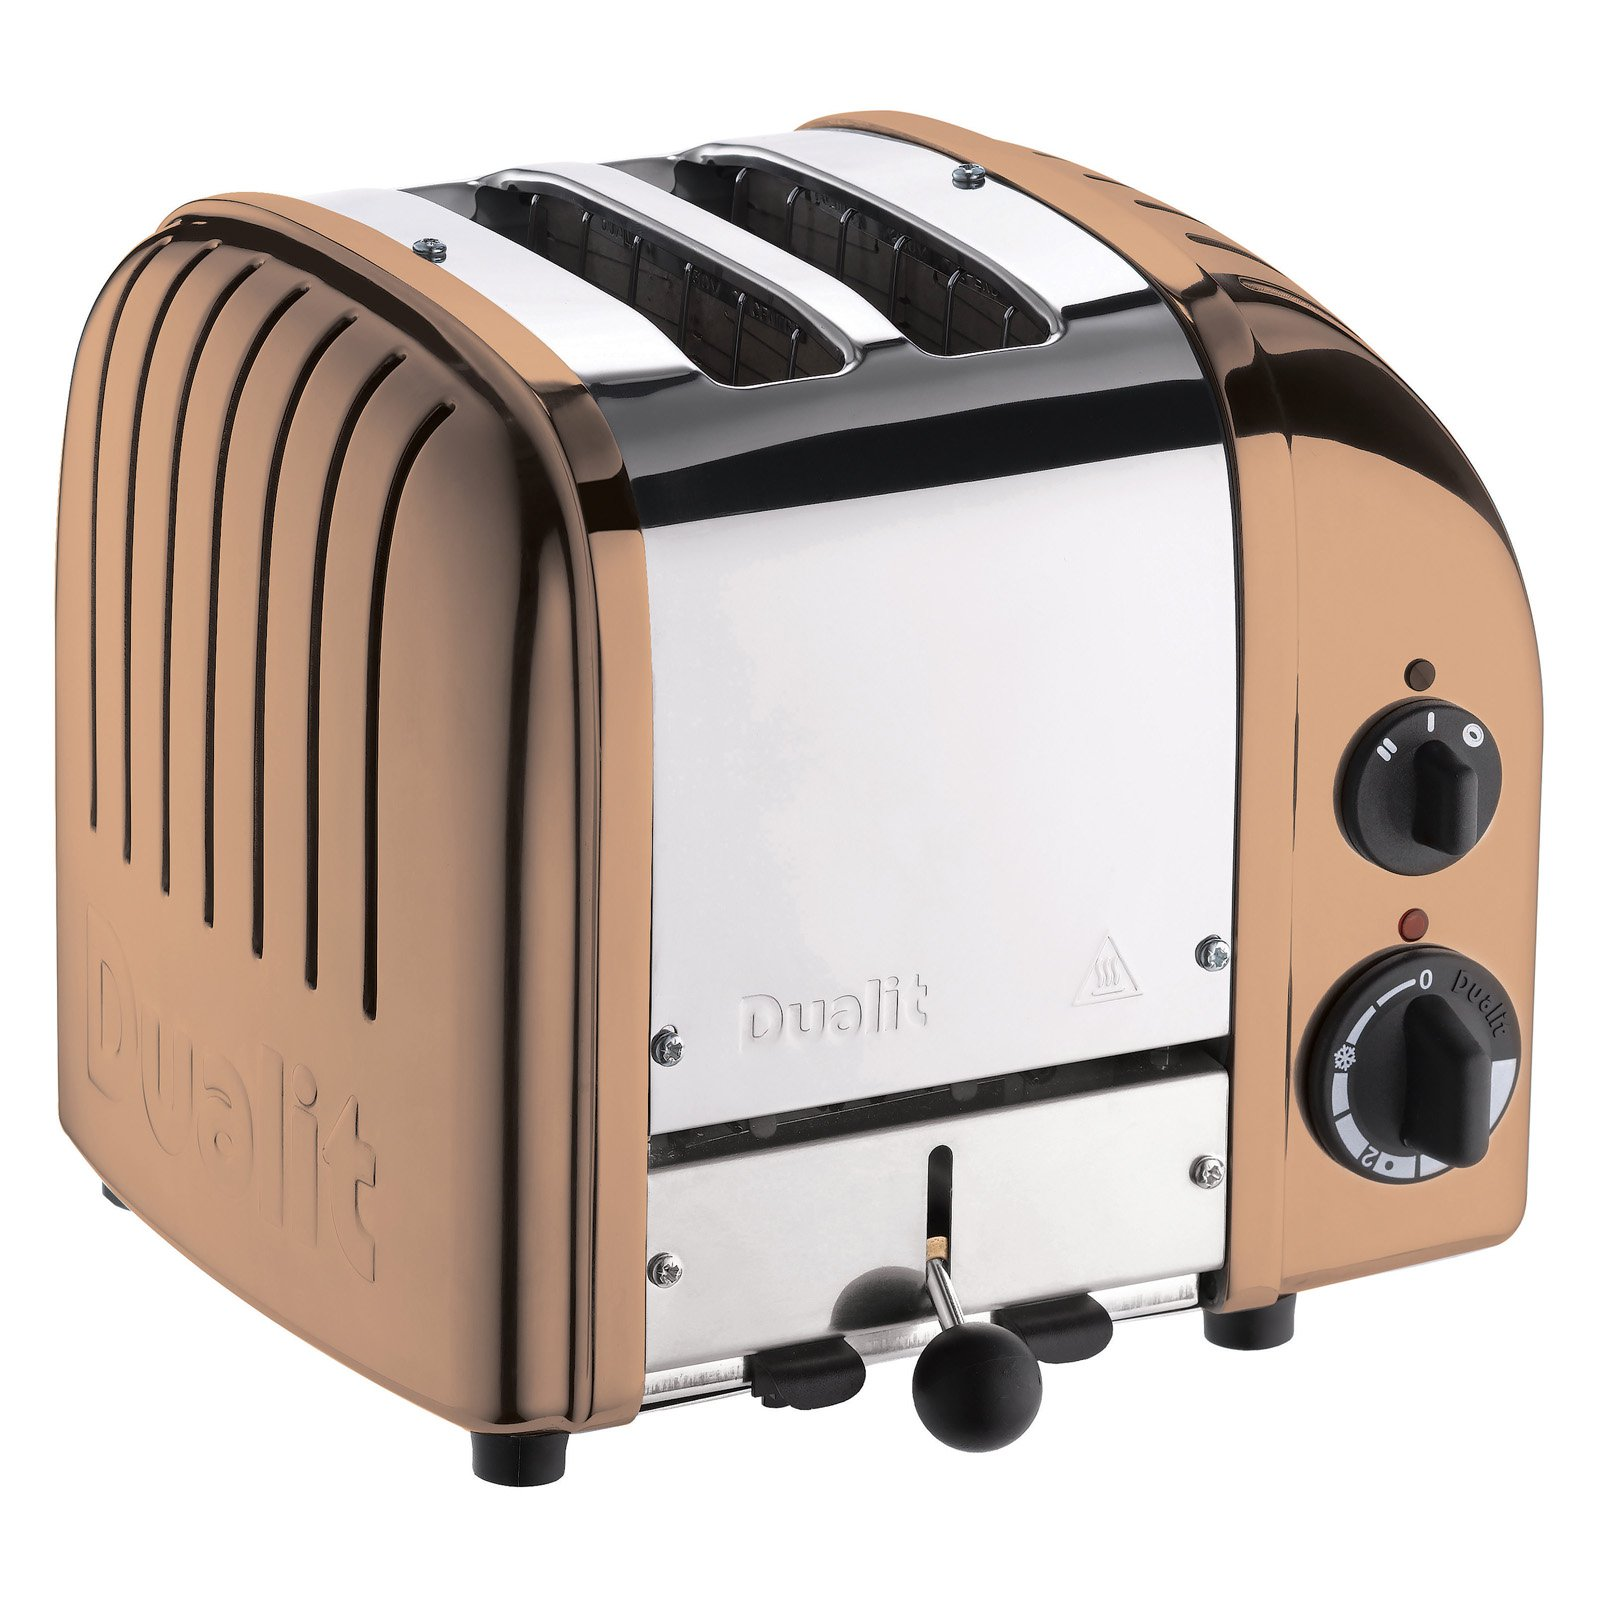 Dualit 27440 2 Slice NewGen Toaster - Copper